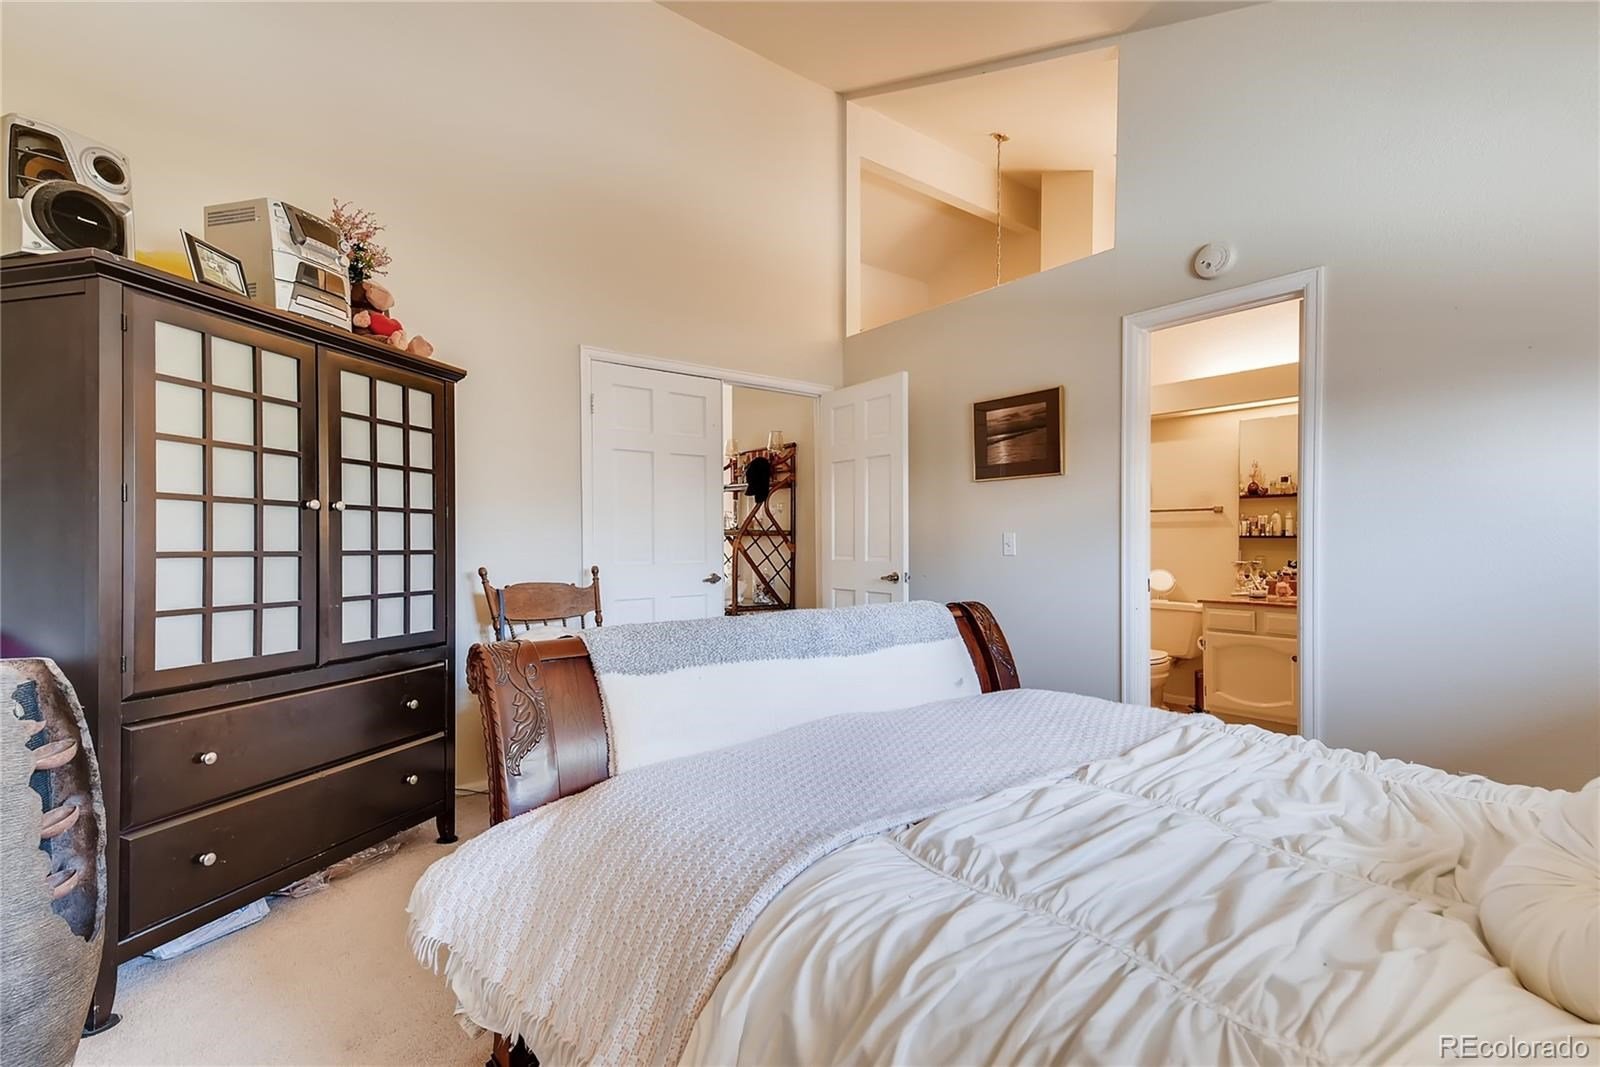 MLS# 6910180 - 11 - 2336 Ranch Drive, Westminster, CO 80234